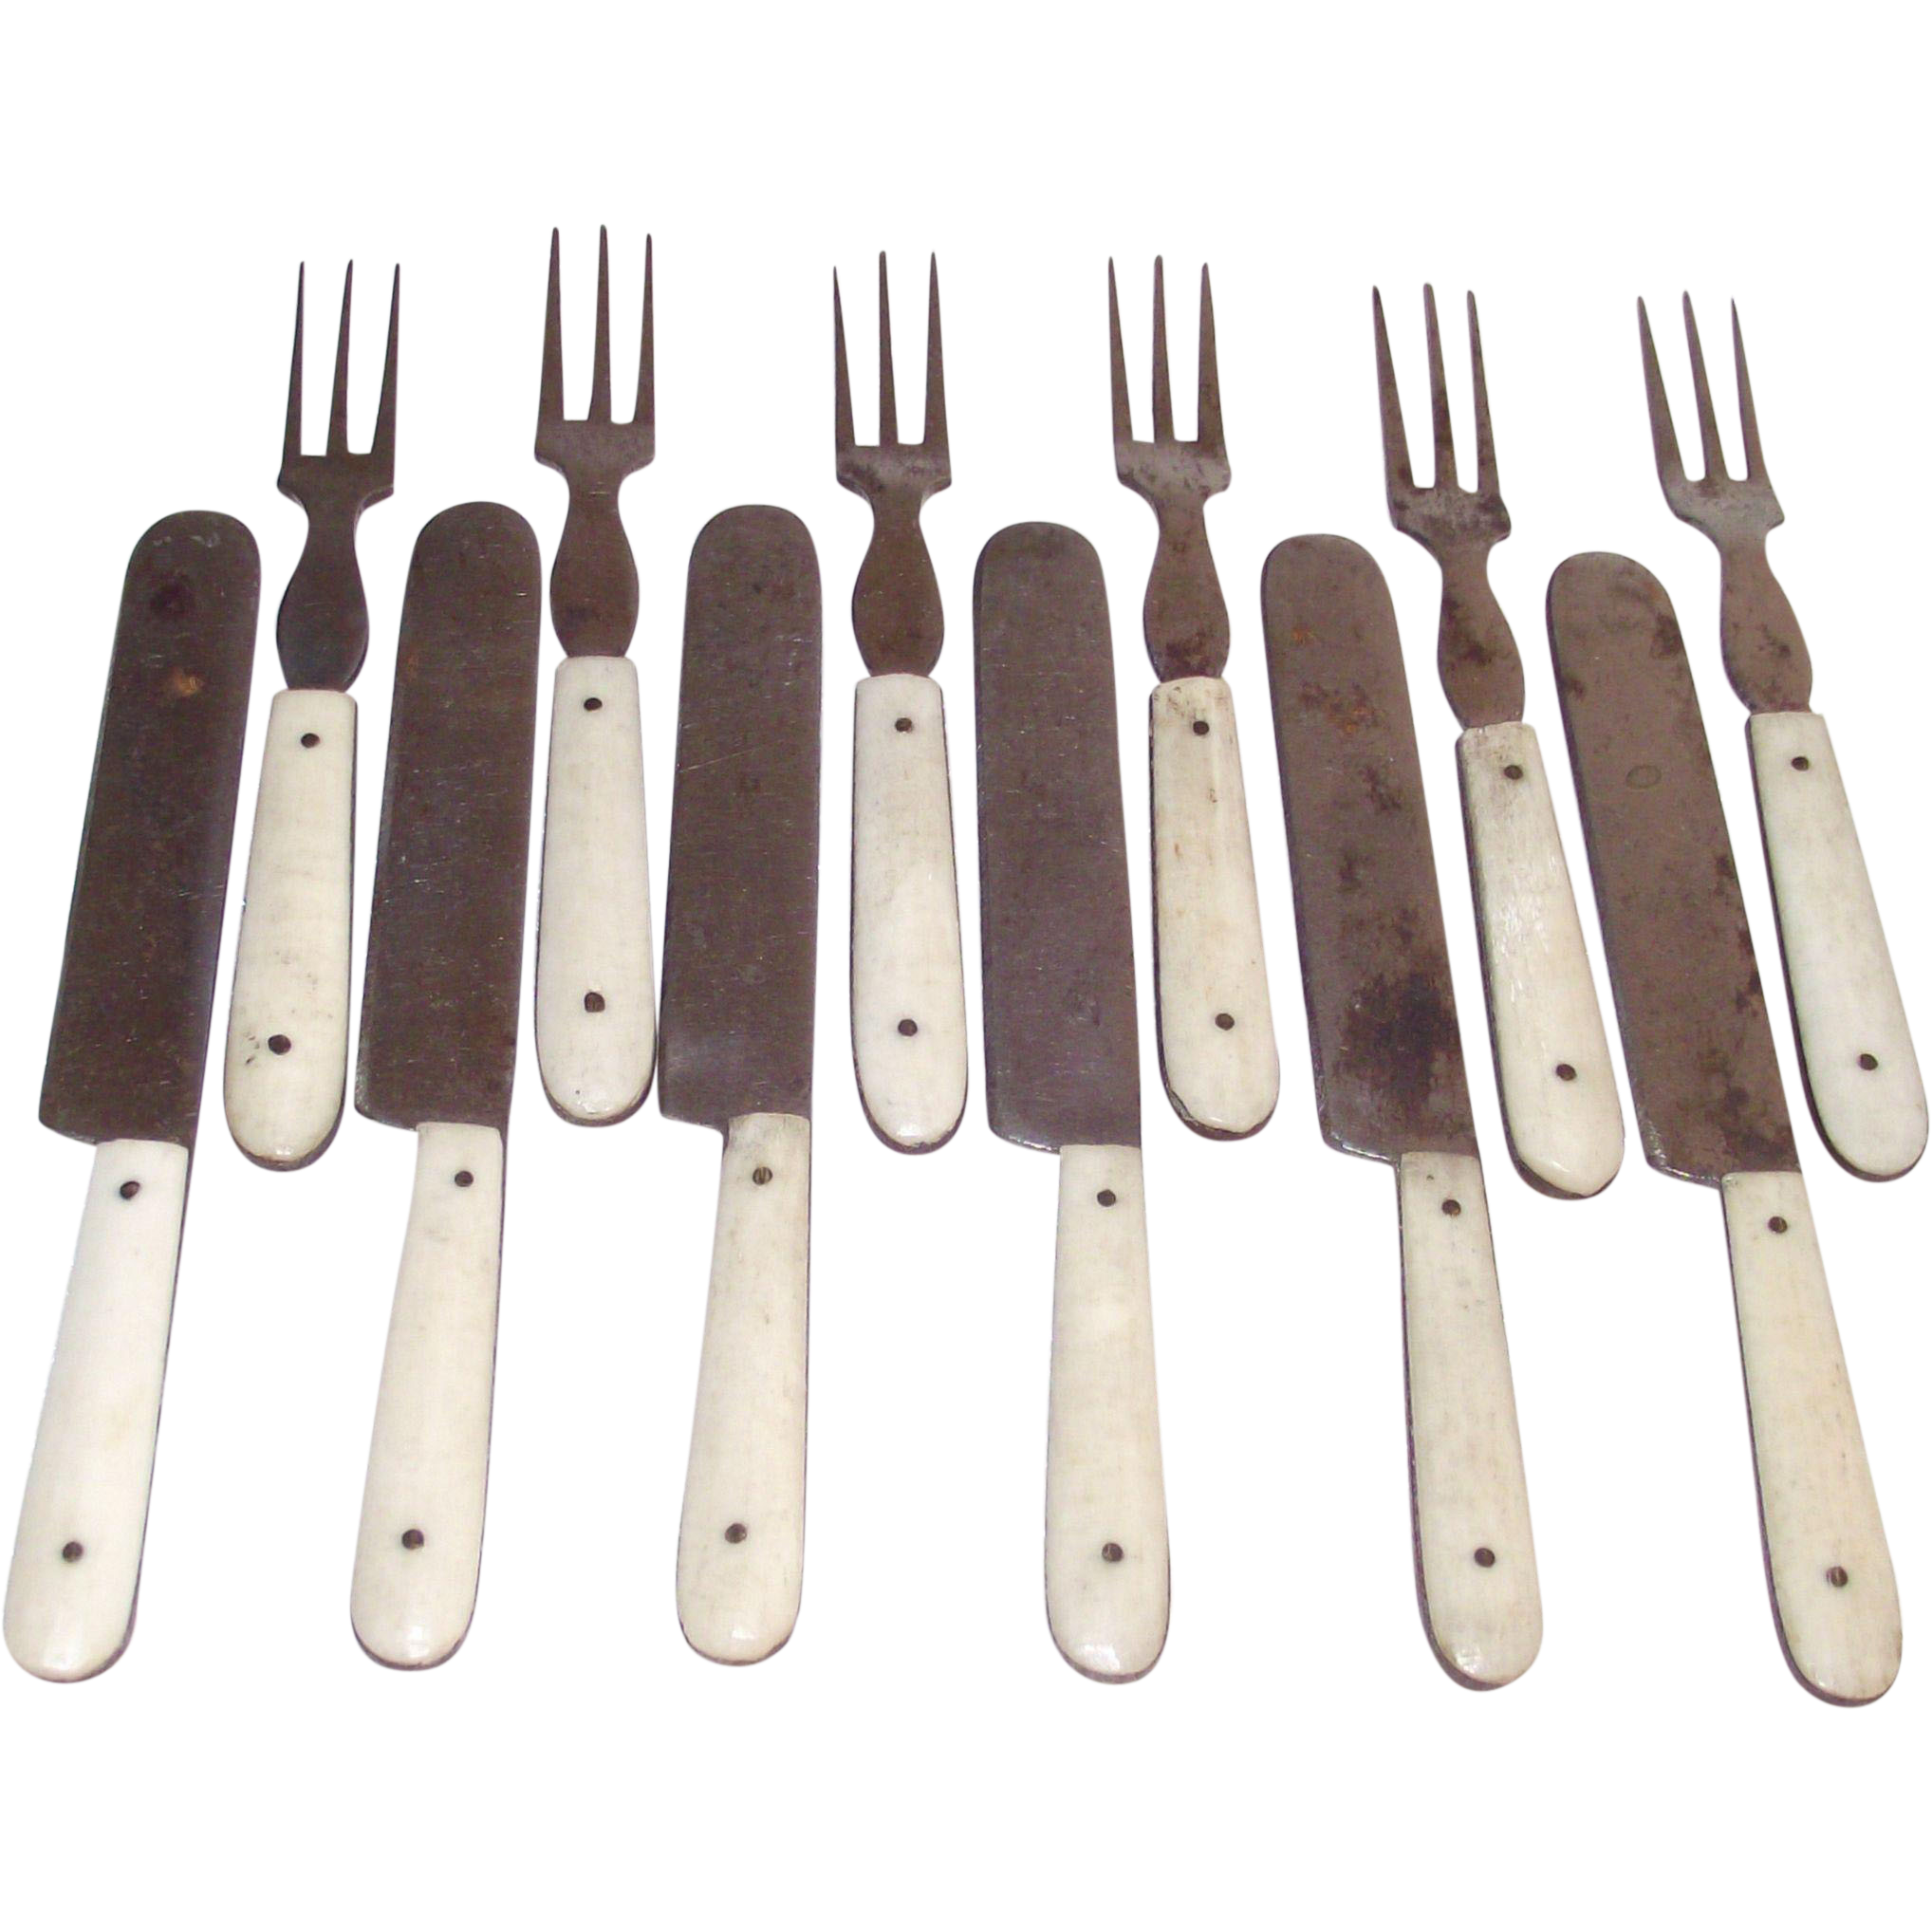 Children's Bone Handled Toy Flatware 12 Piece Set Forks and Knives